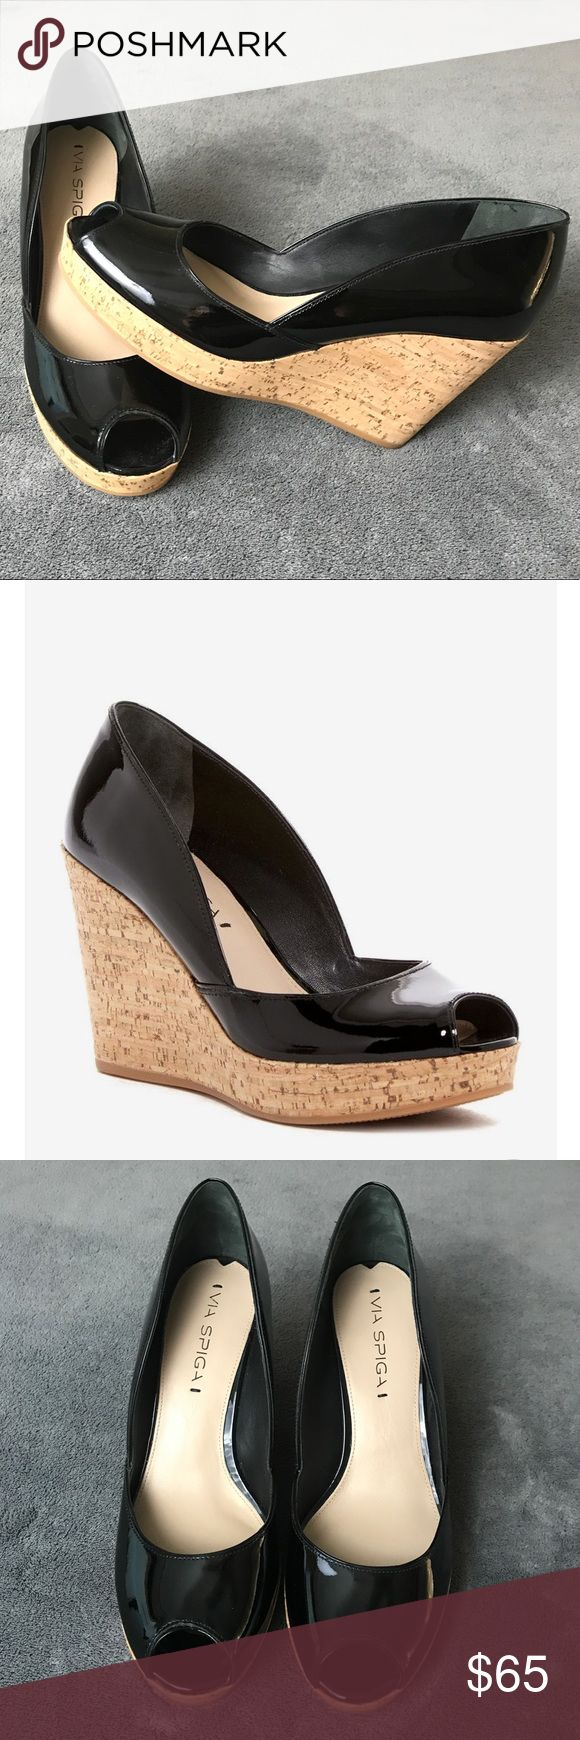 "Via Spiga Stan Peep Toe Cork Wedge Platform Pumps New w/o box. Features a cork wedge heel and platform, topped by a solid-hued glossy, patent-leather upper. Peep toe. Slip on style. Lightly padded insole. Wedge heel. Approximately 3.5"" heel and 1"" platform. Size: 8M Via Spiga Shoes Platforms"